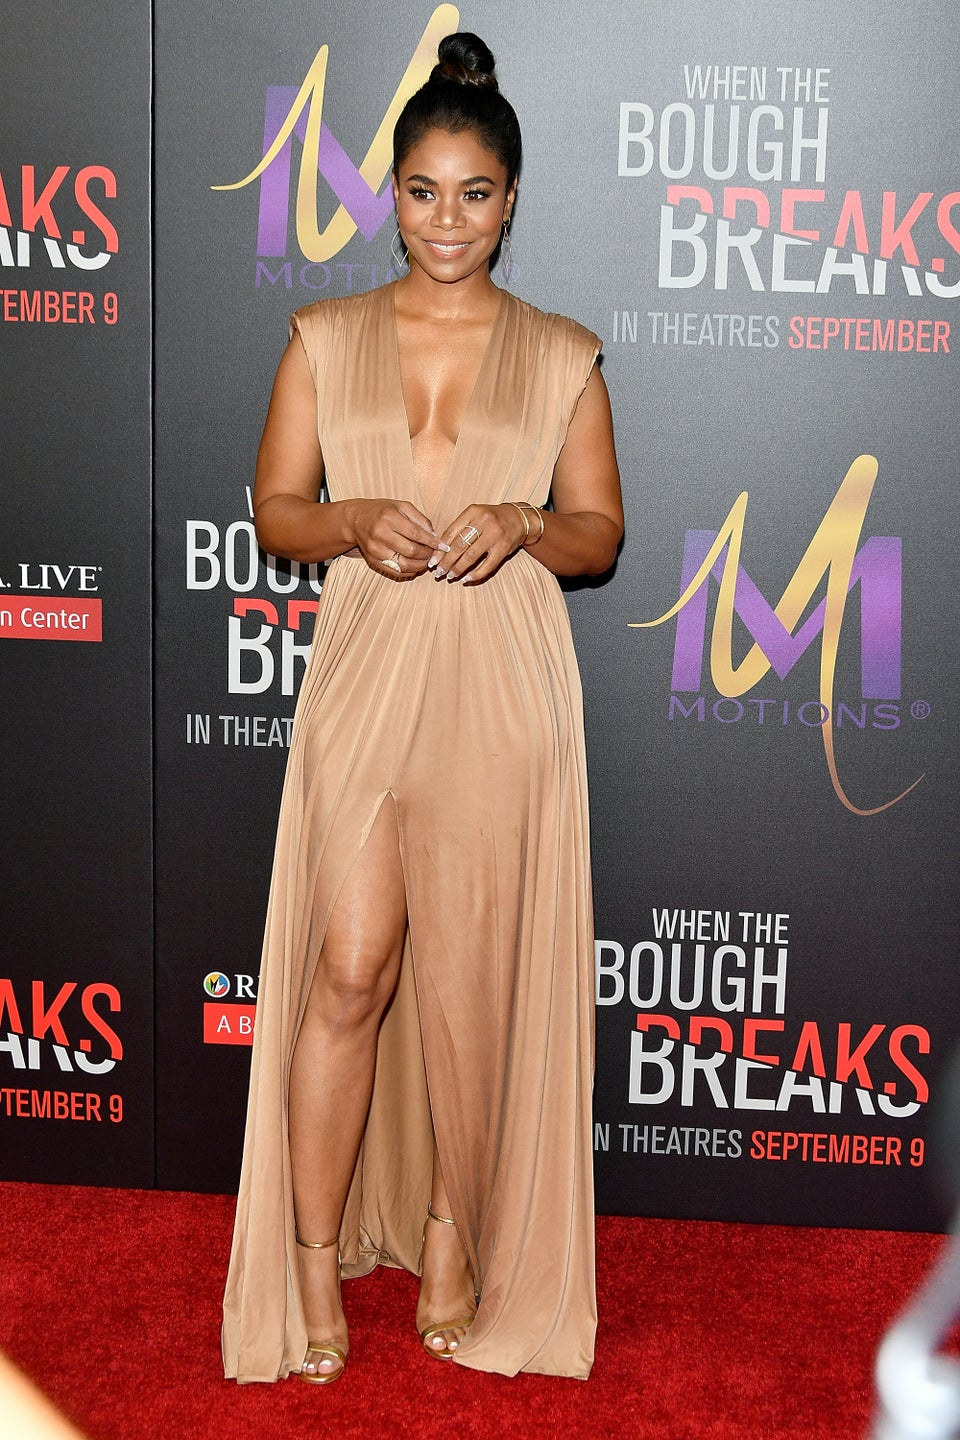 Look of the Day: Regina Hall is Giving us Grecian Goddess Vibes in Nude Flowing Dress